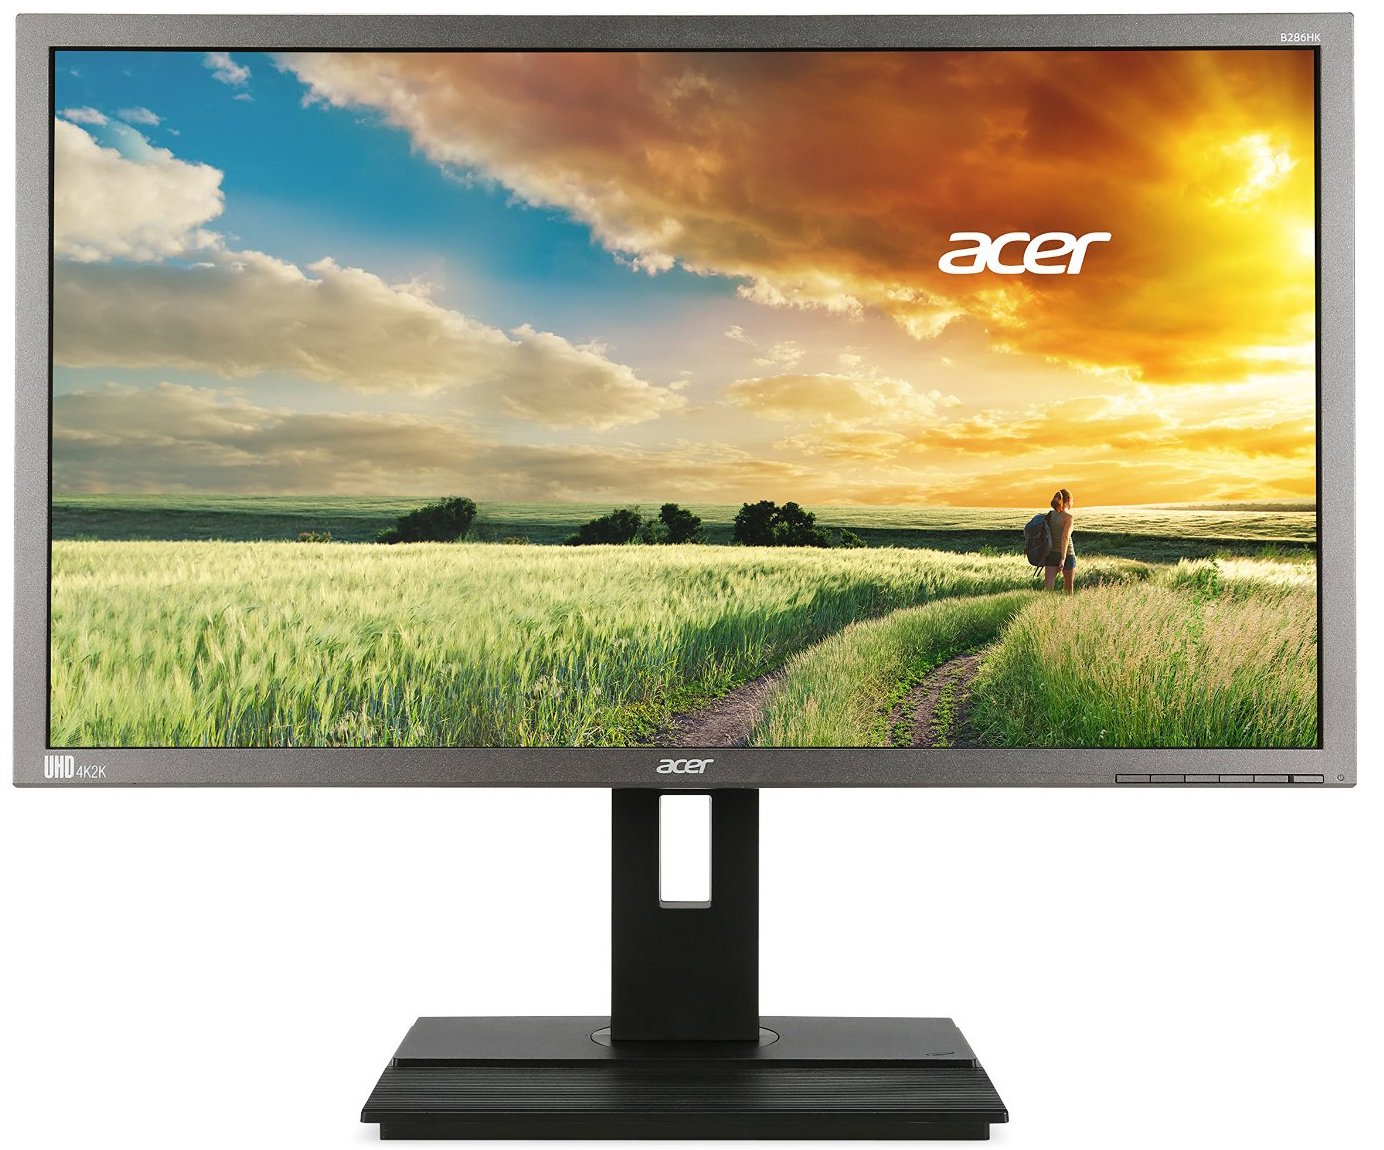 Acer-4K-discount-sale-best price